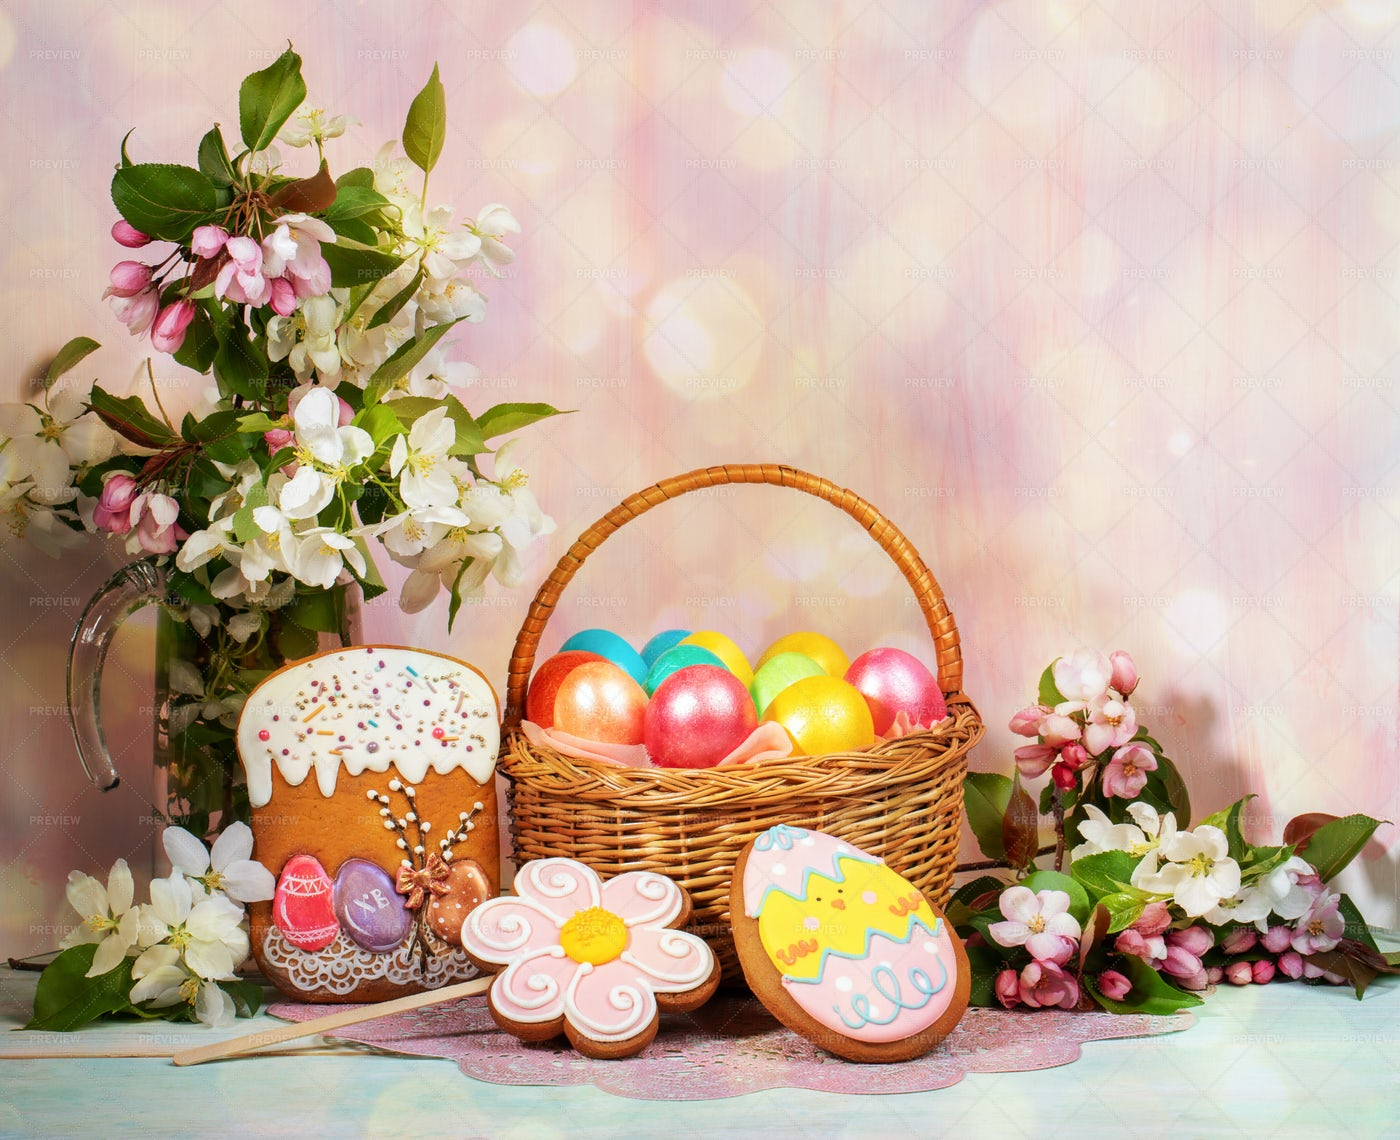 Easter Greeting Card With Eggs: Stock Photos